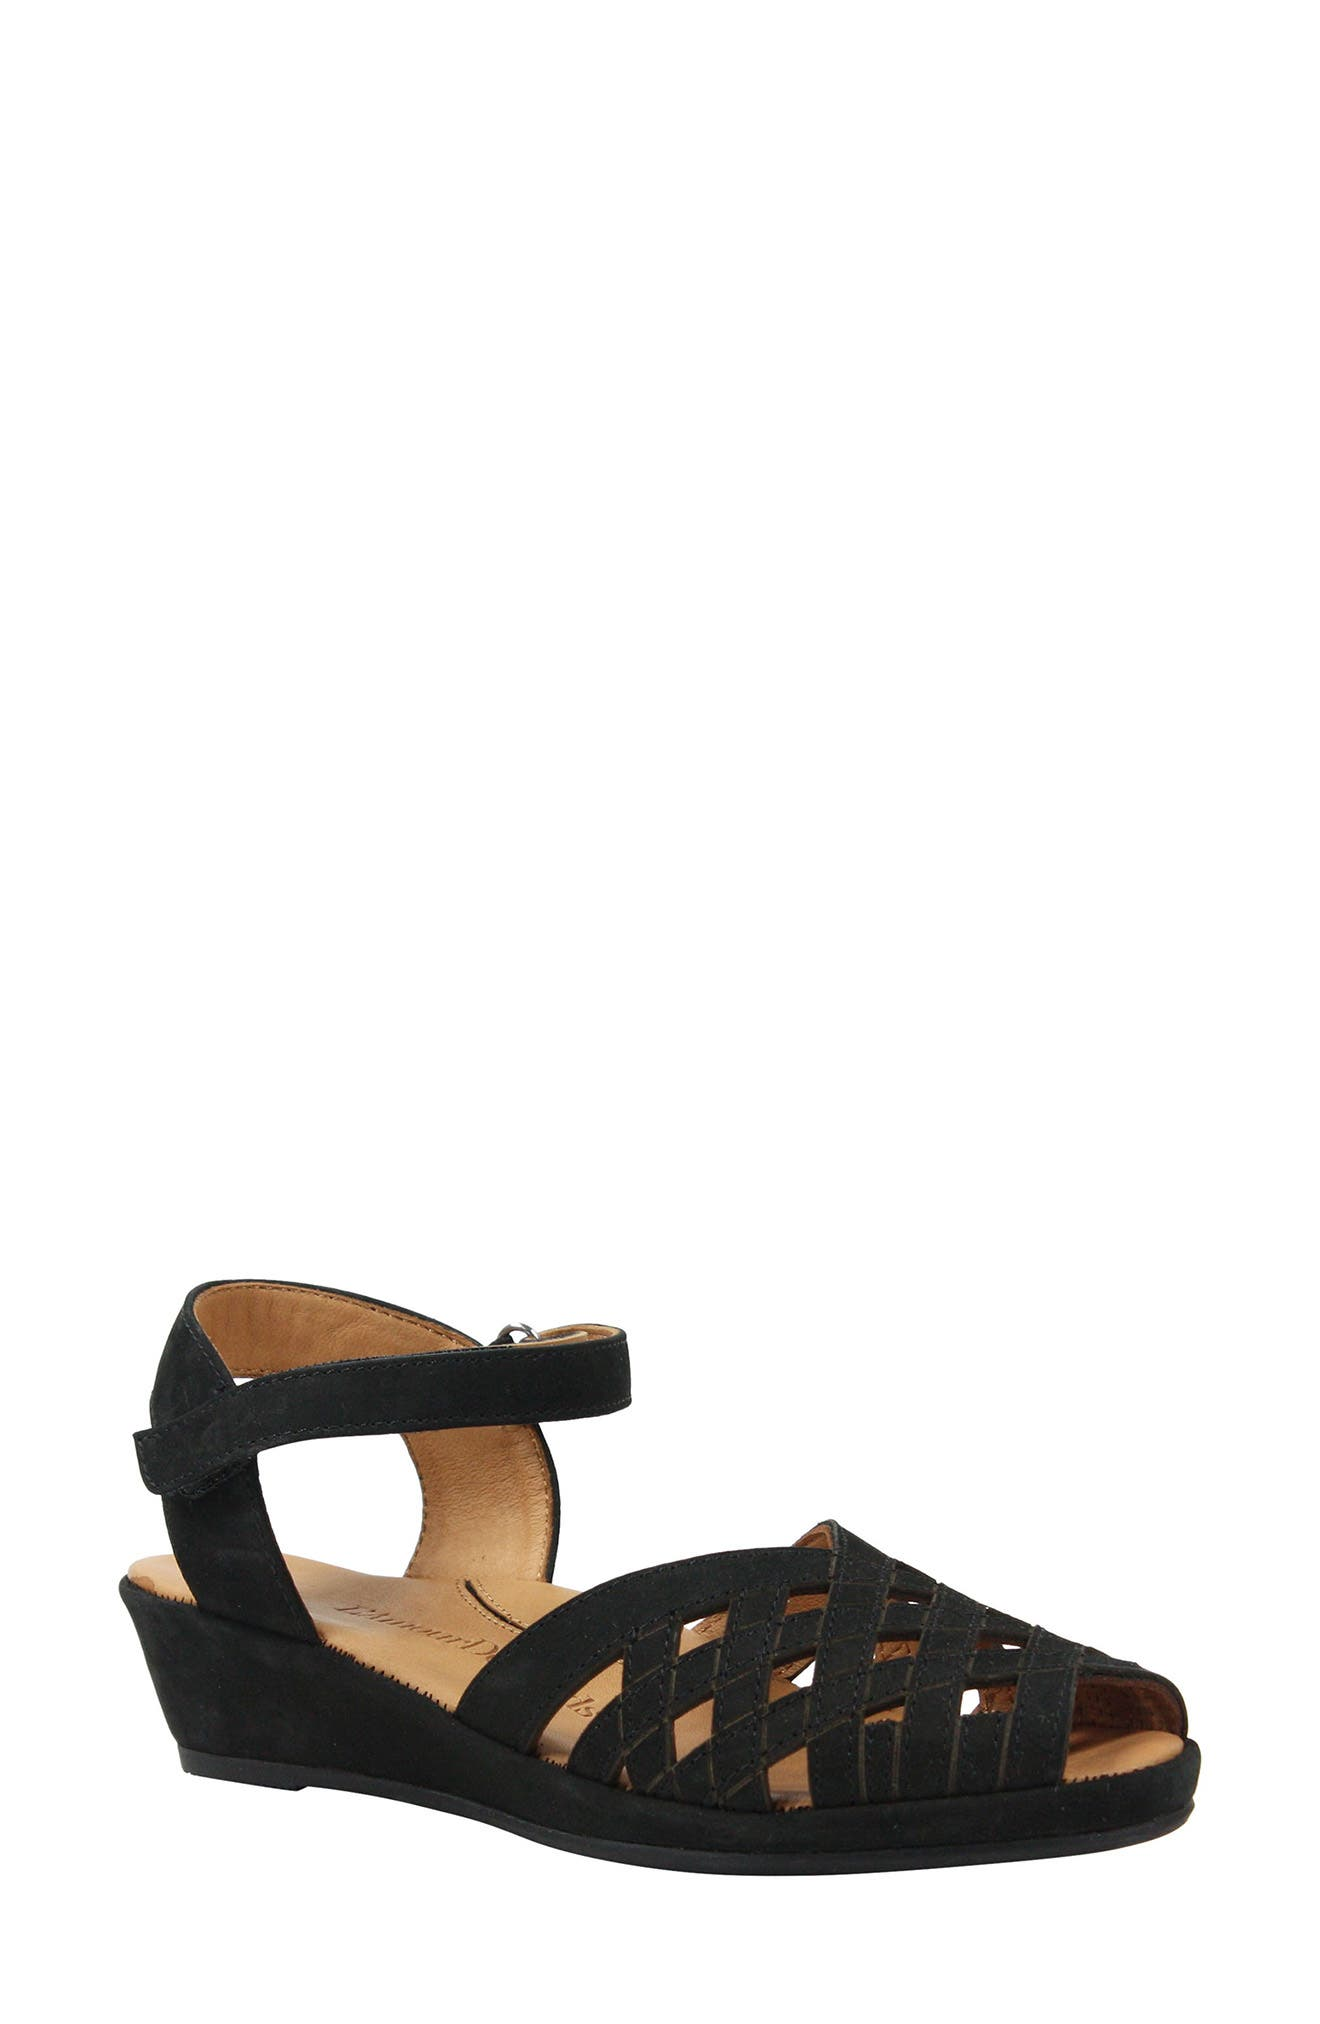 Burcie Wedge Sandal,                             Main thumbnail 1, color,                             BLACK NUBUCK LEATHER